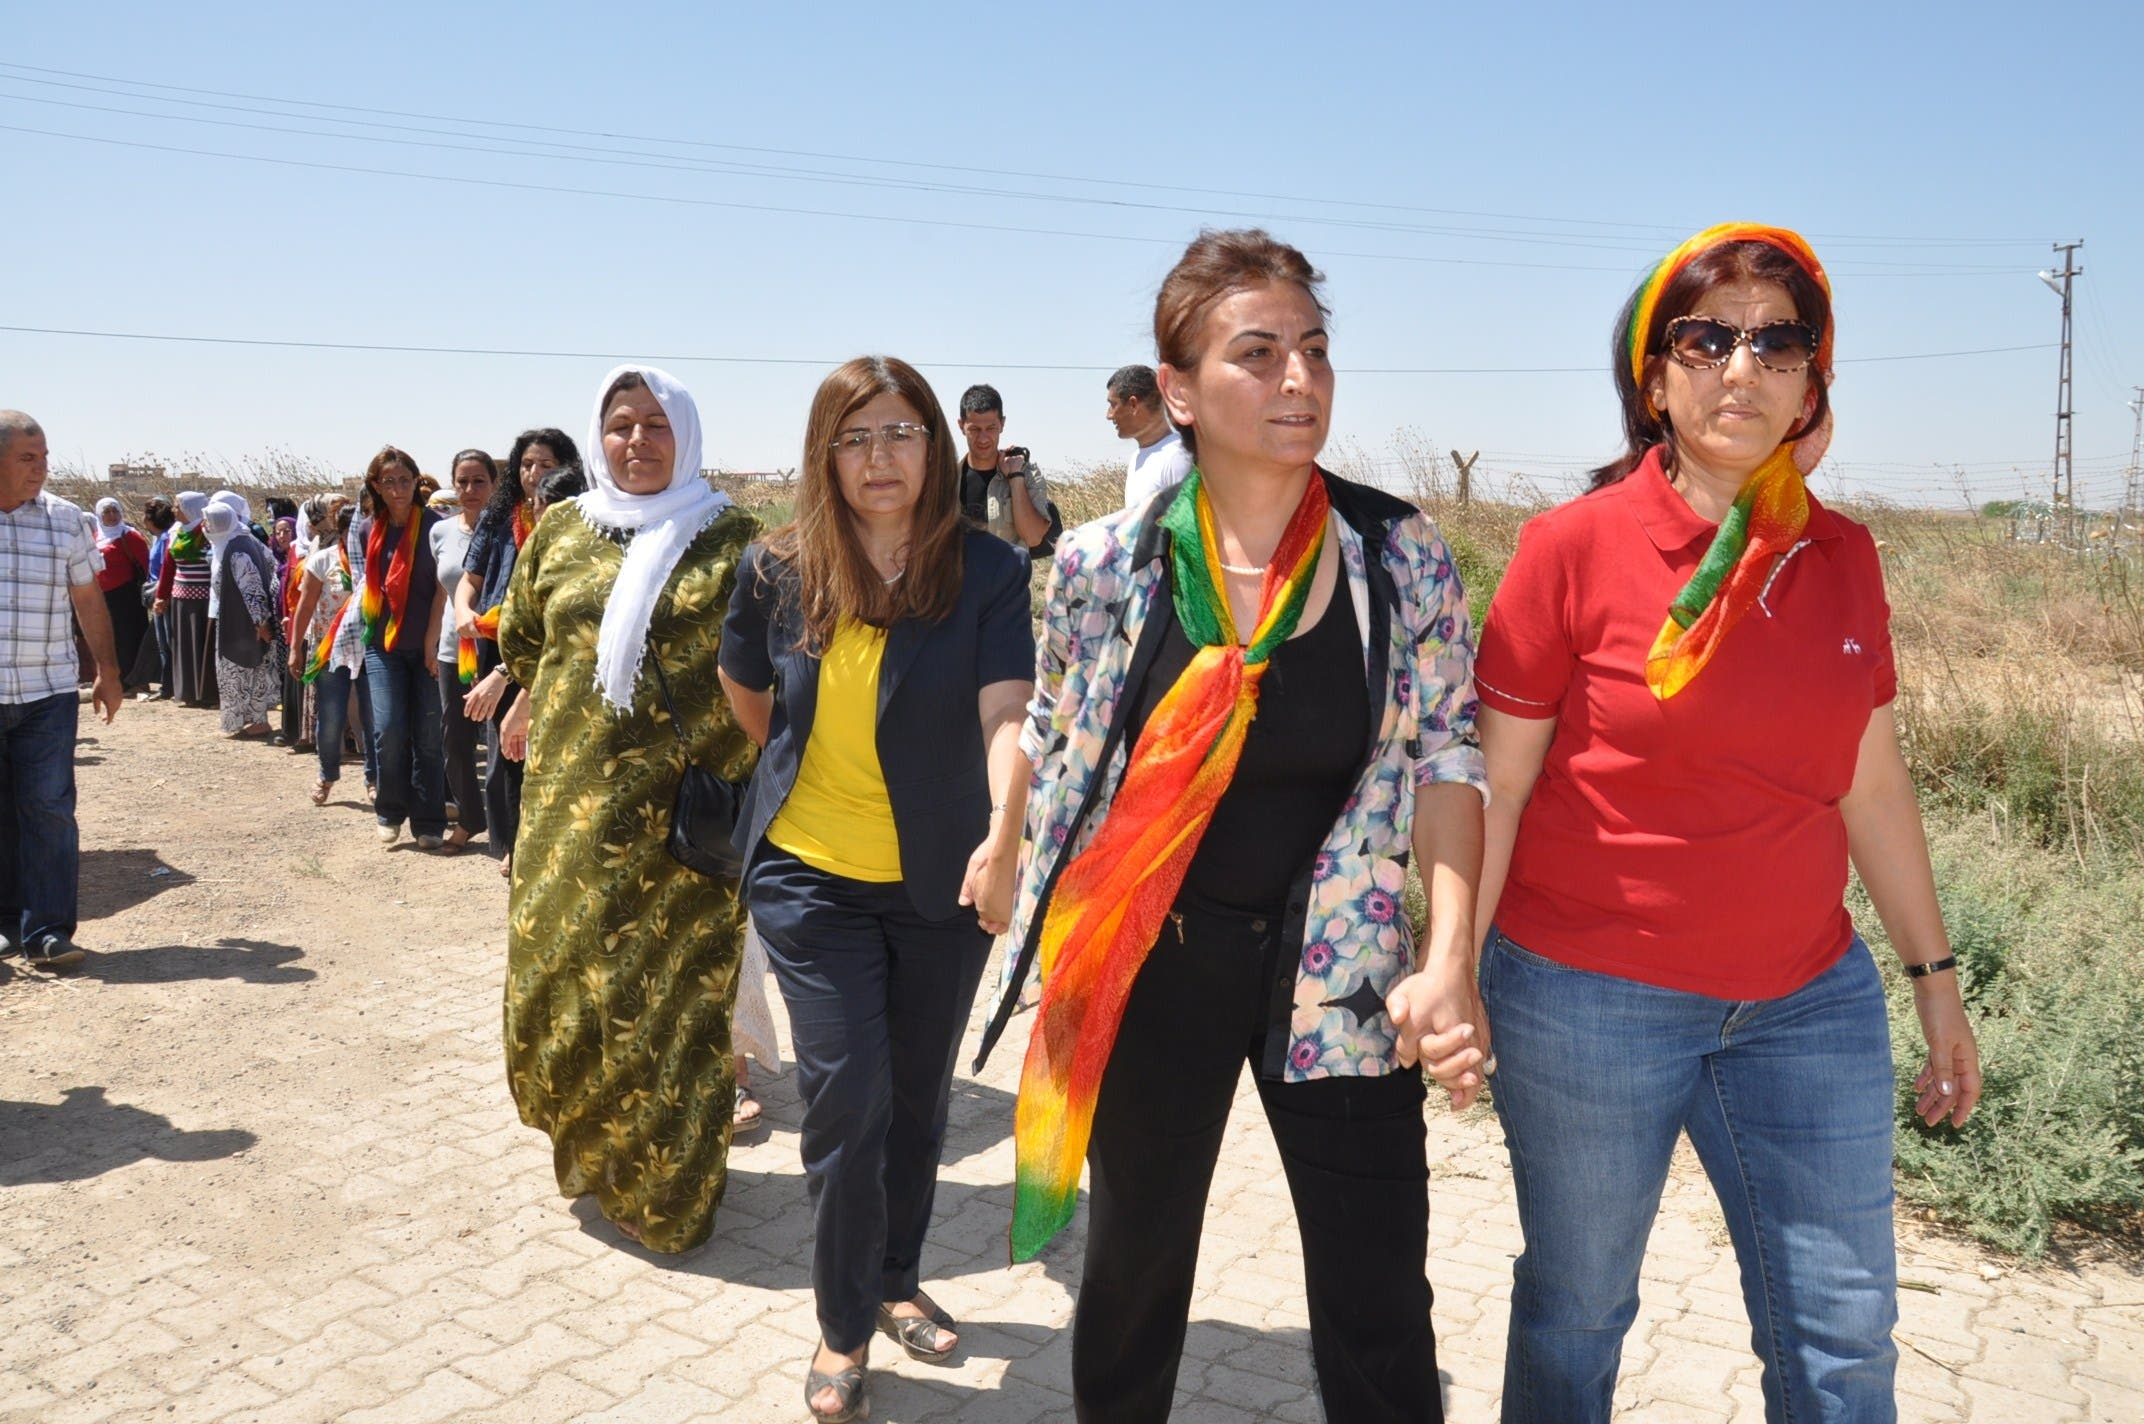 Kurds in the Syrian conflict